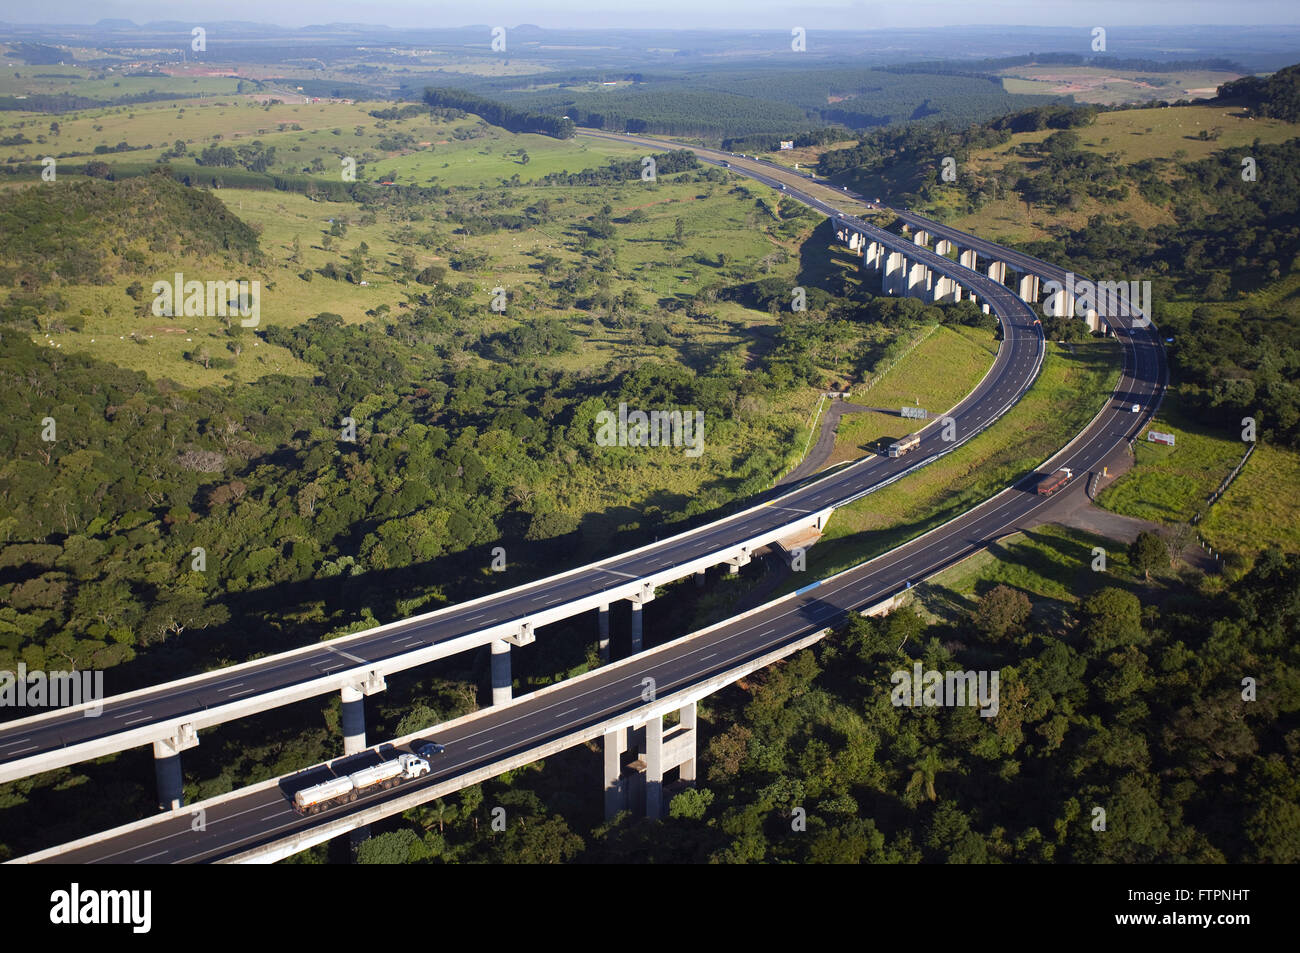 Aerial view of the highway overpasses Castelo Branco SP-280 in the hills of Botucatu - Stock Image